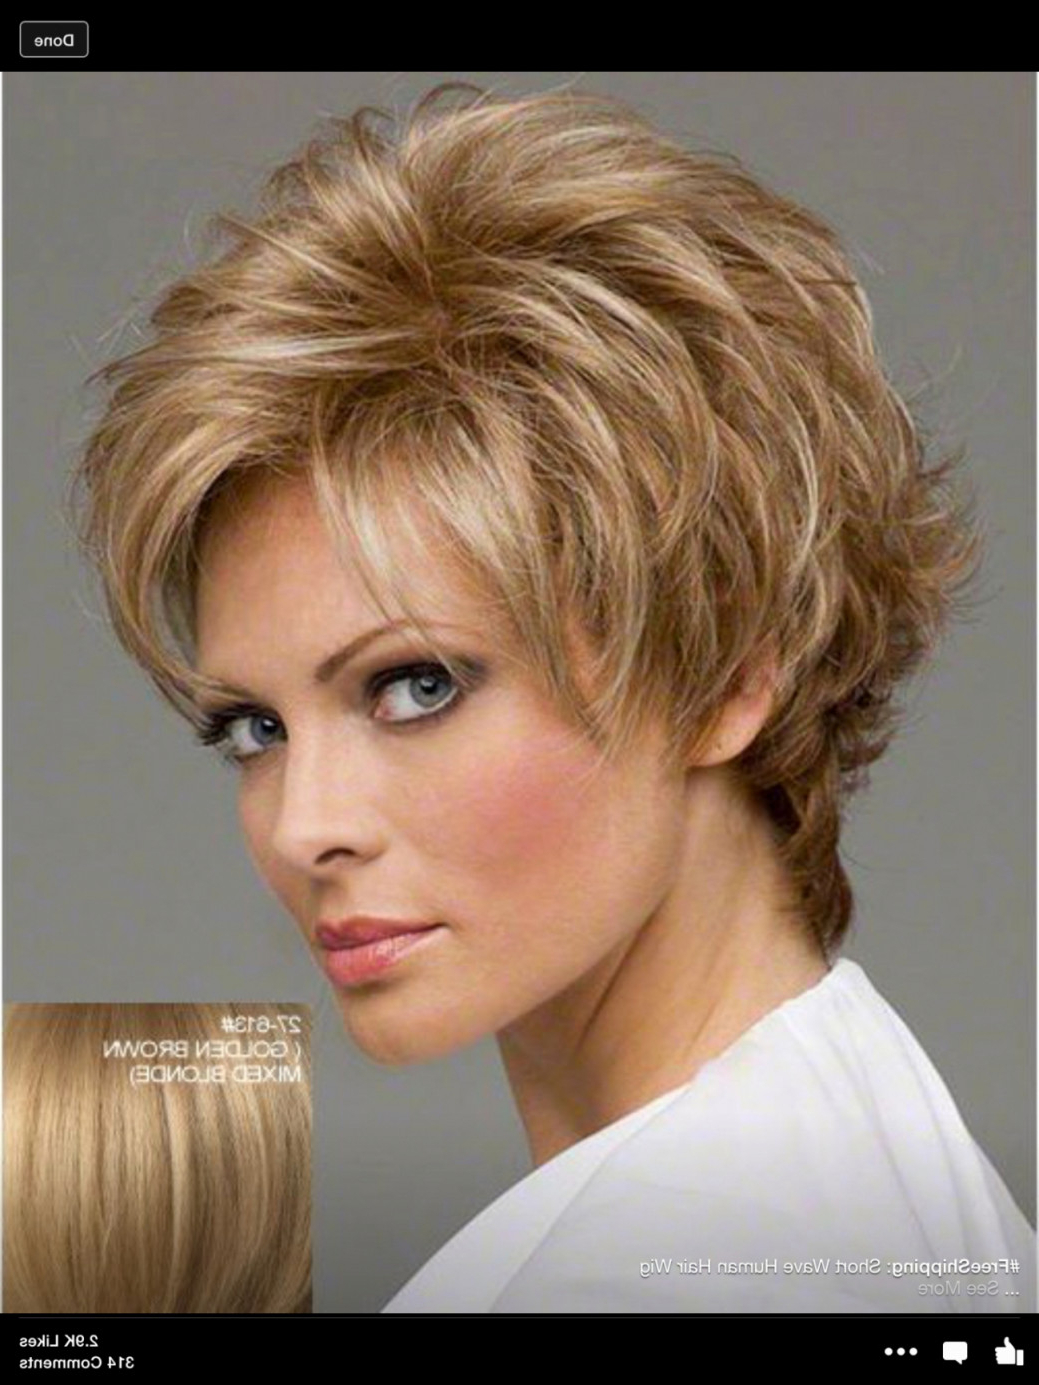 Short Hairstyles For Graduation | All Hairstyles Regarding Hairstyles For Short Hair For Graduation (View 24 of 25)